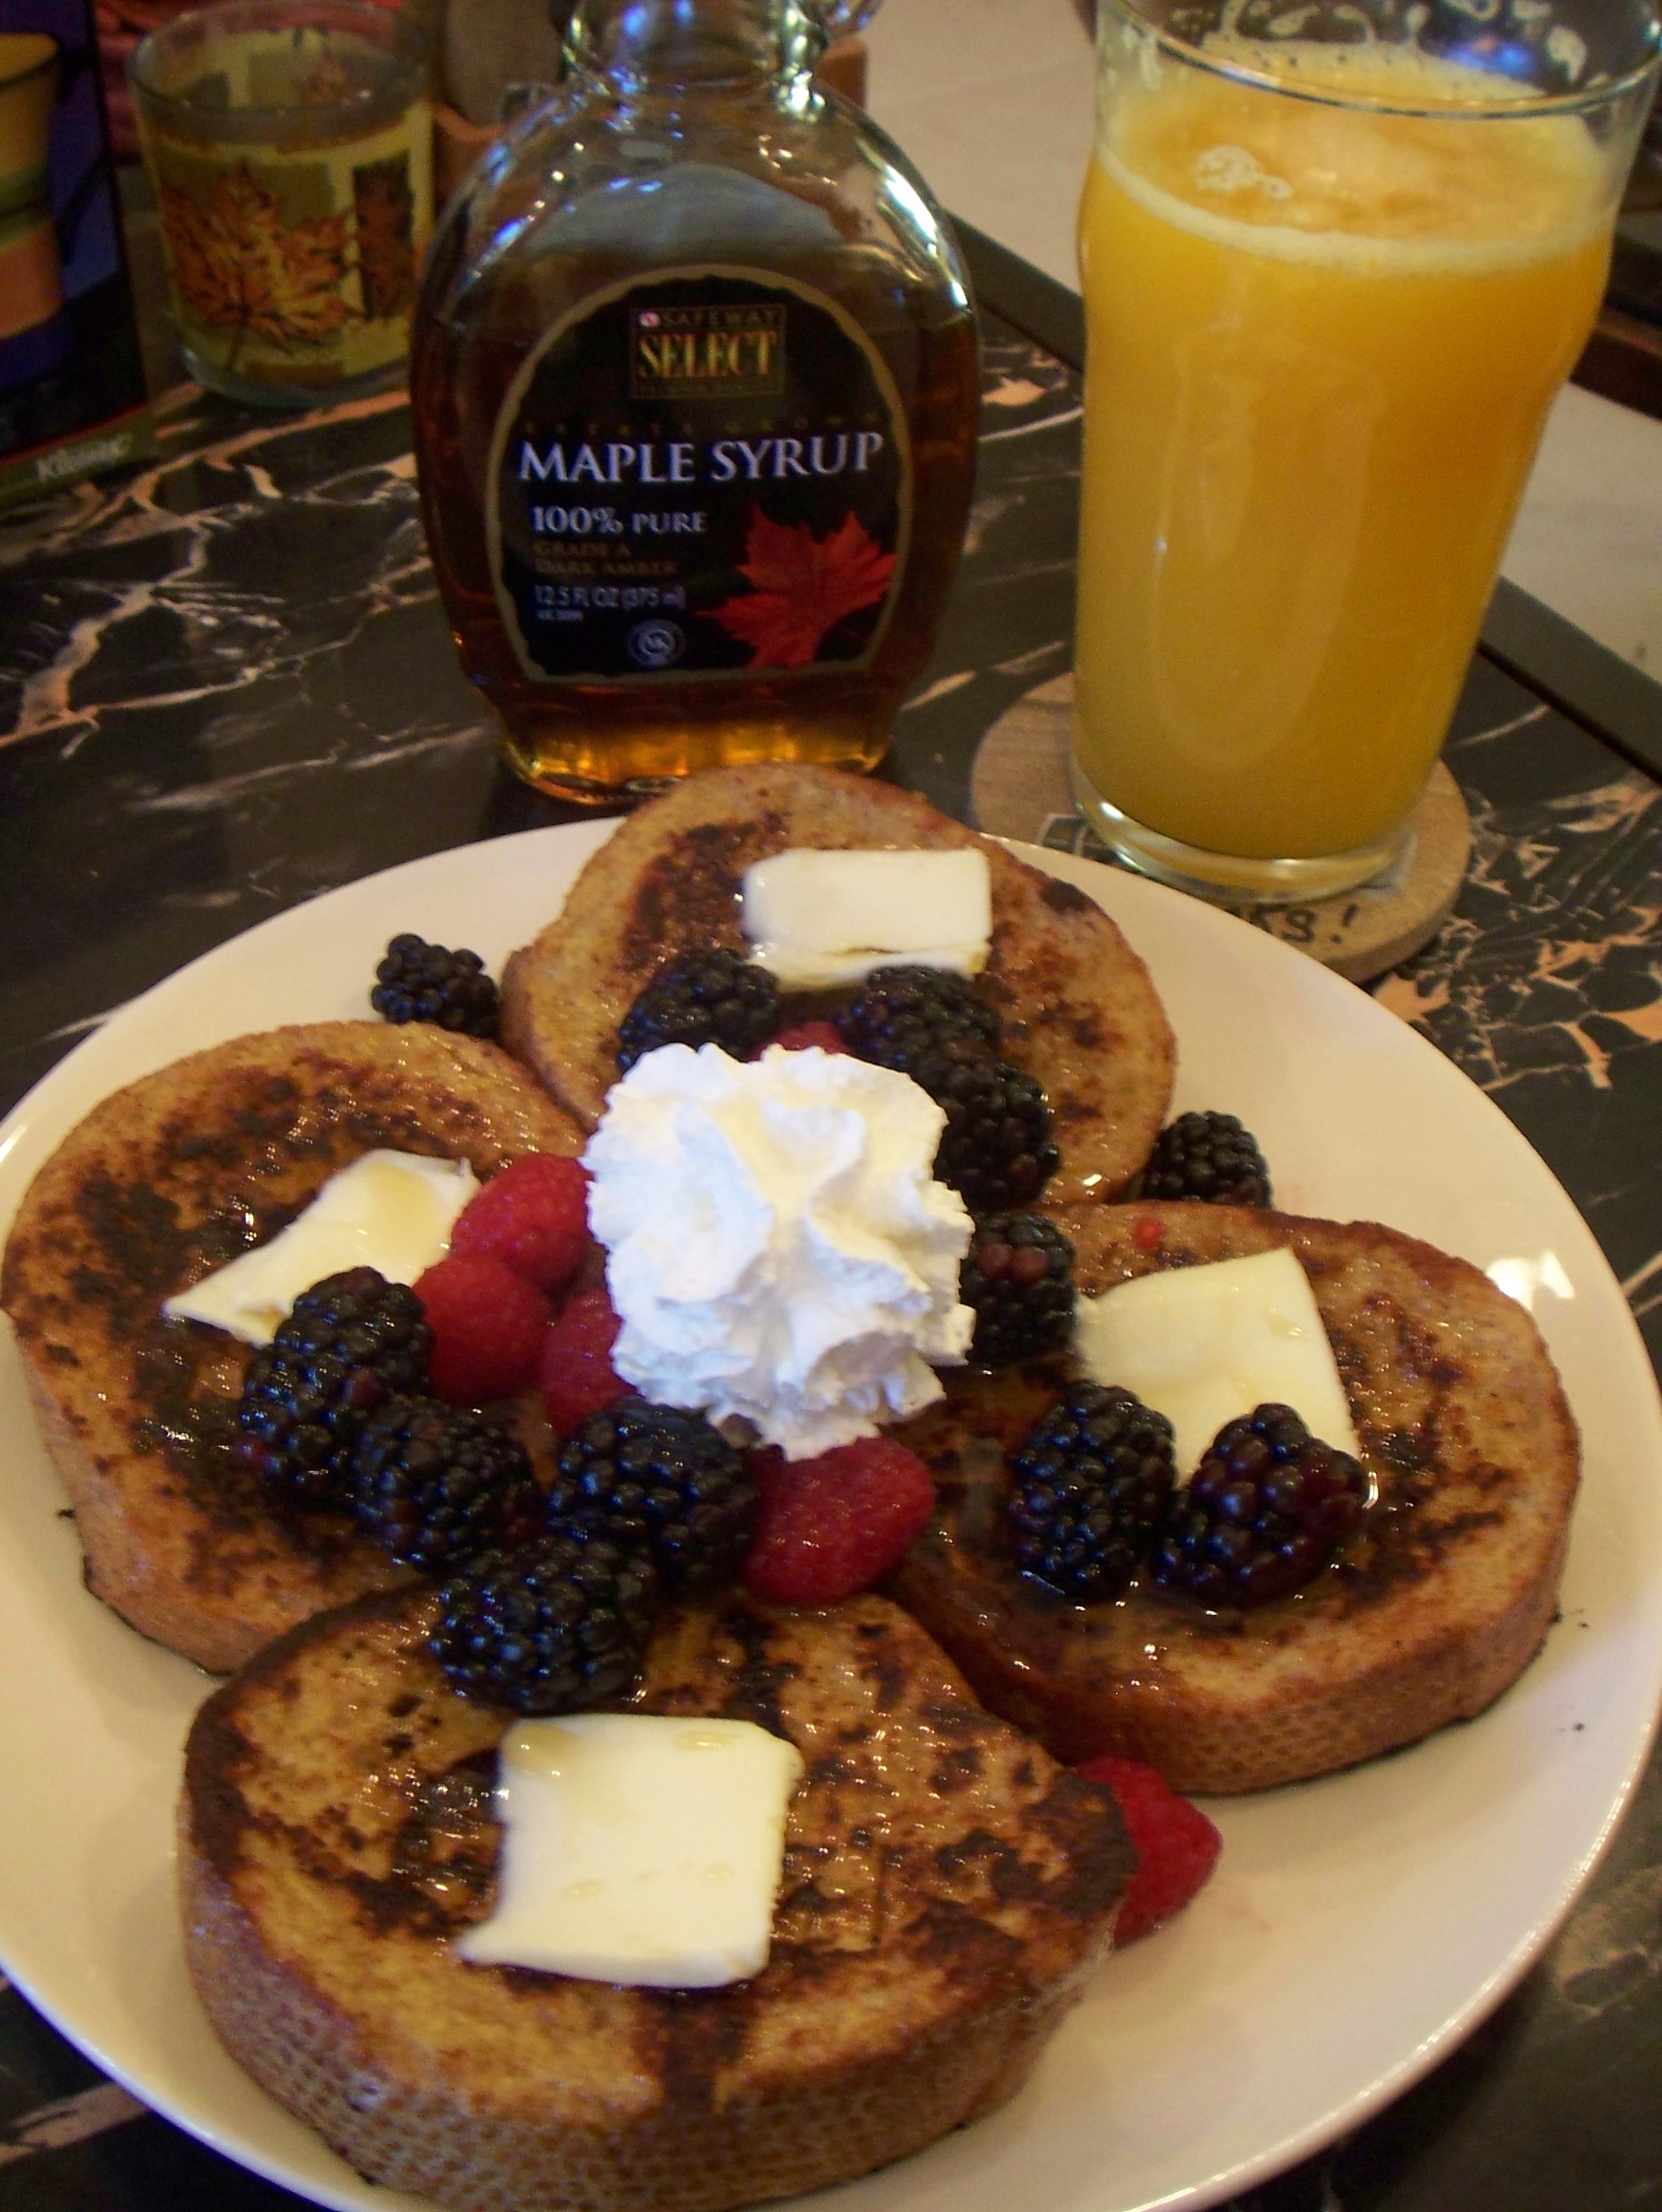 File:French toast, maple syrup.jpg - Wikimedia Commons